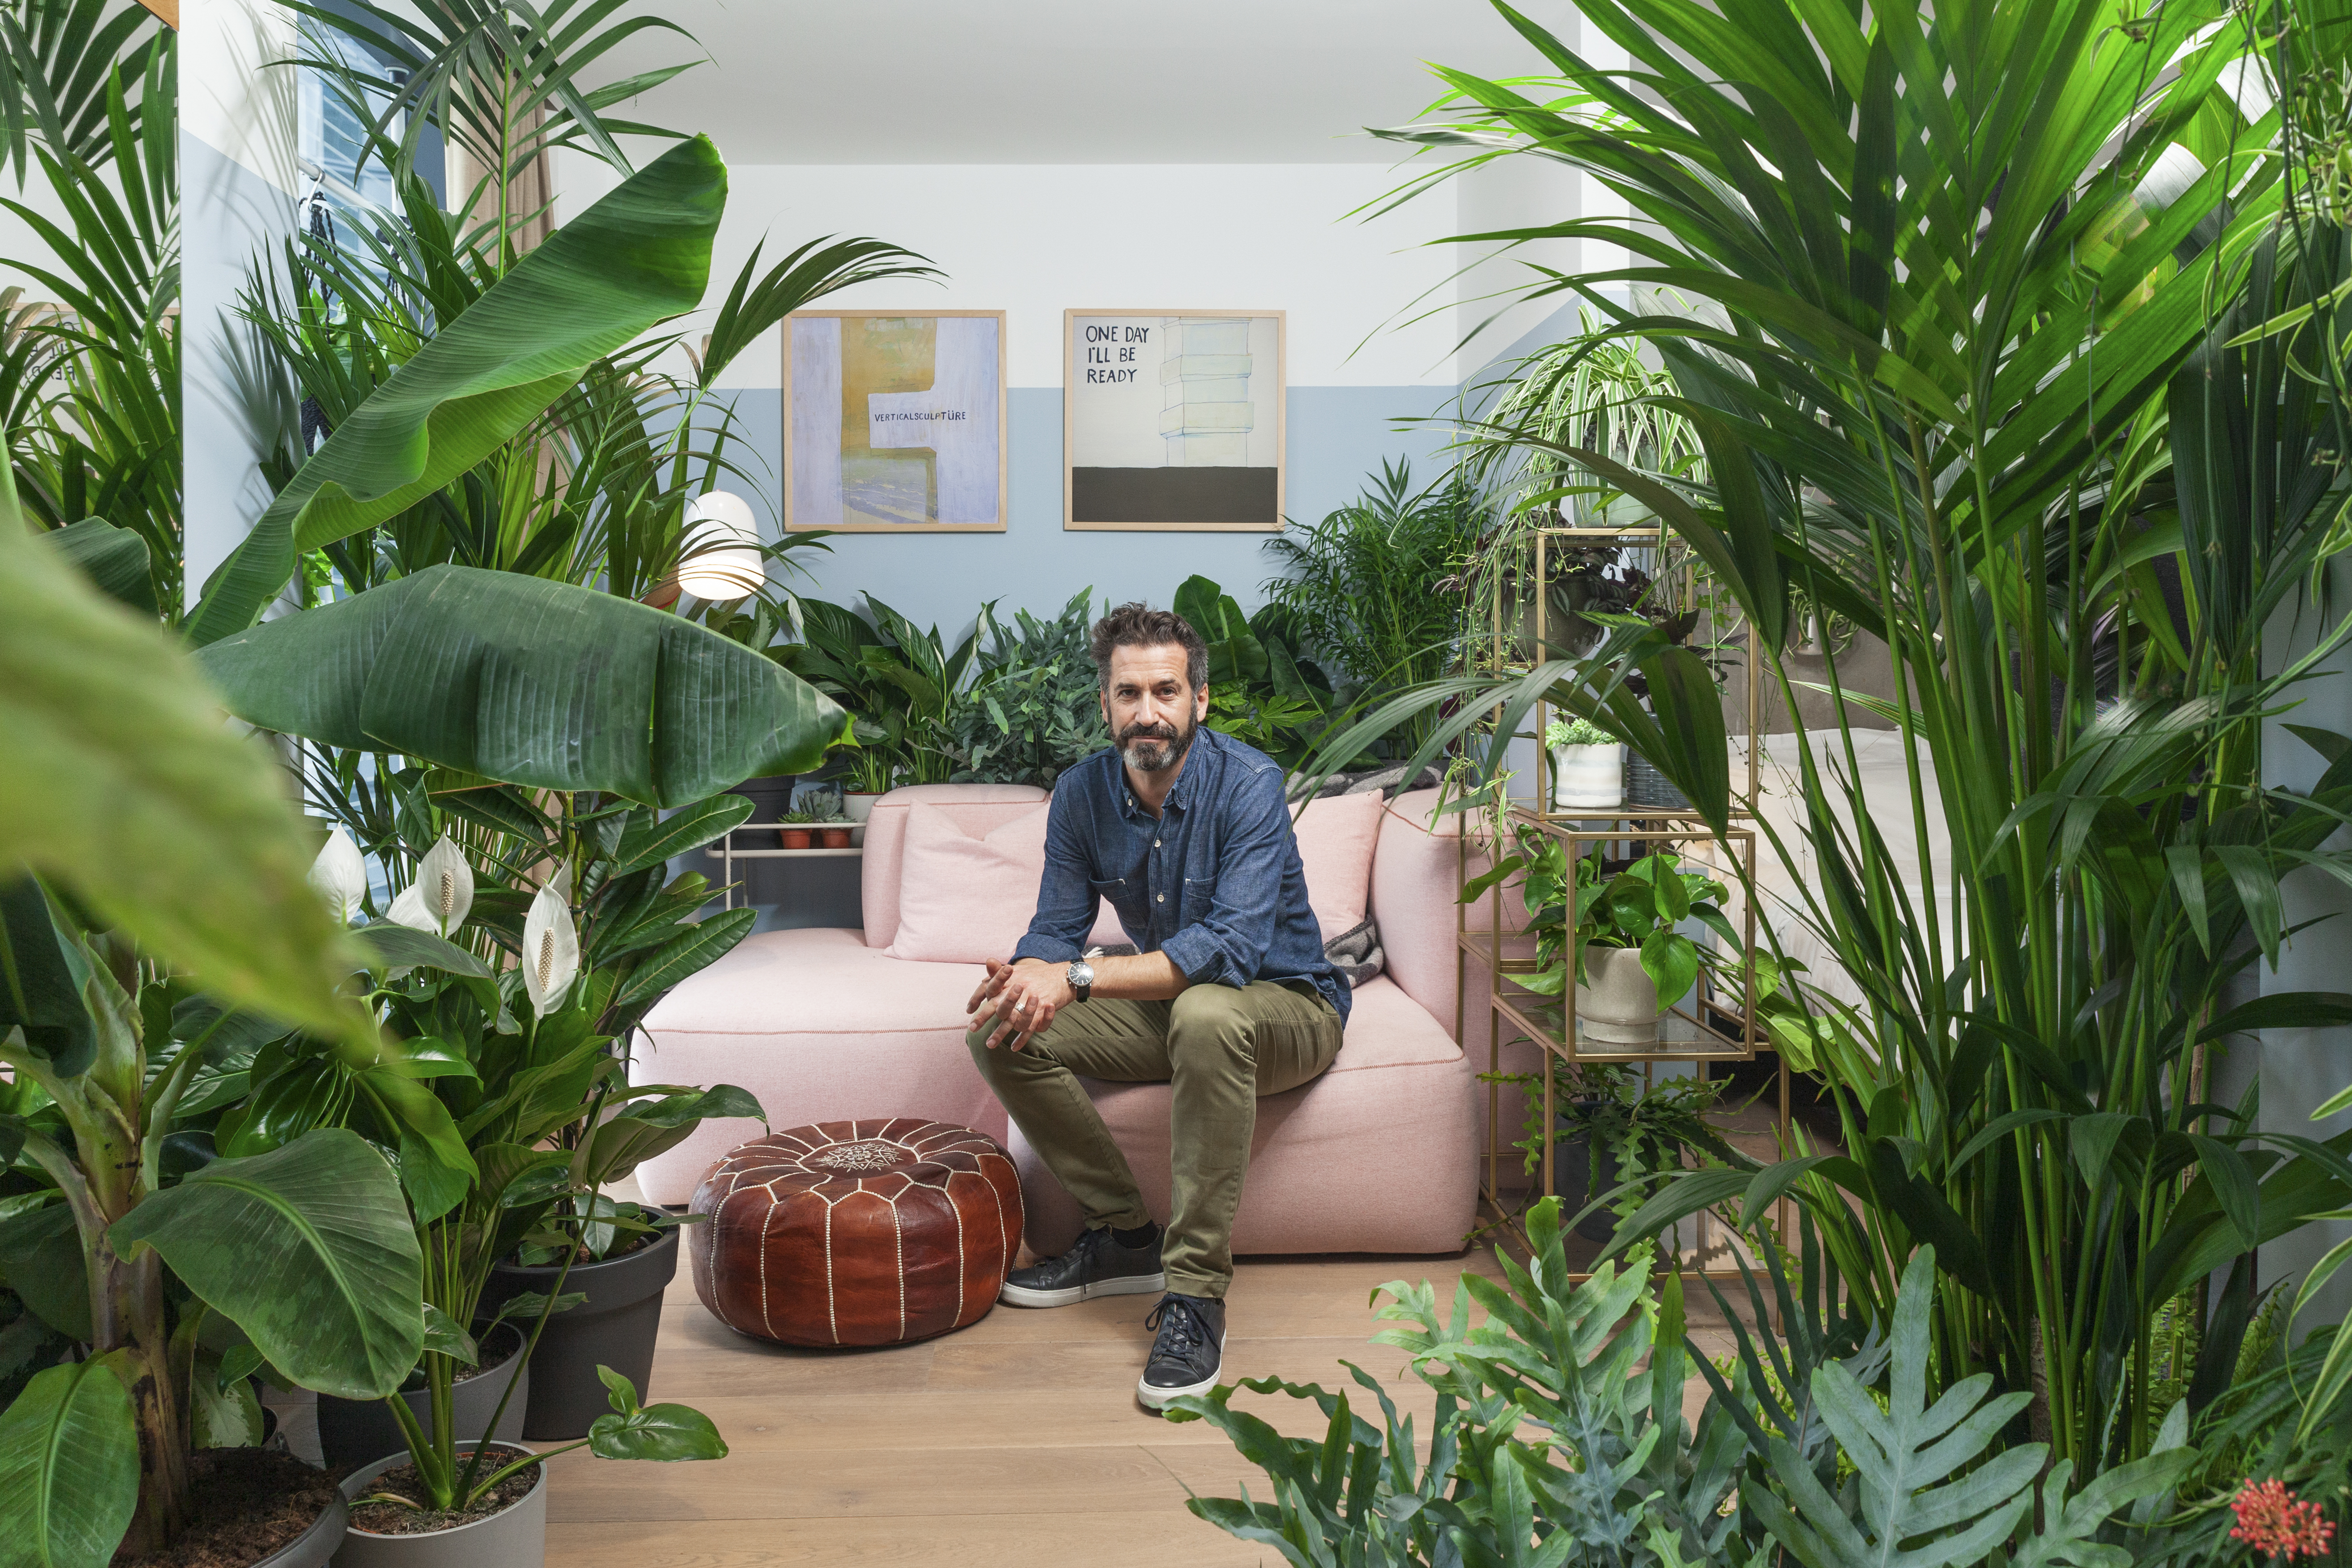 'Houseplant hotel suites' showcase greenery that can make us feel calm, loved-up or more productive